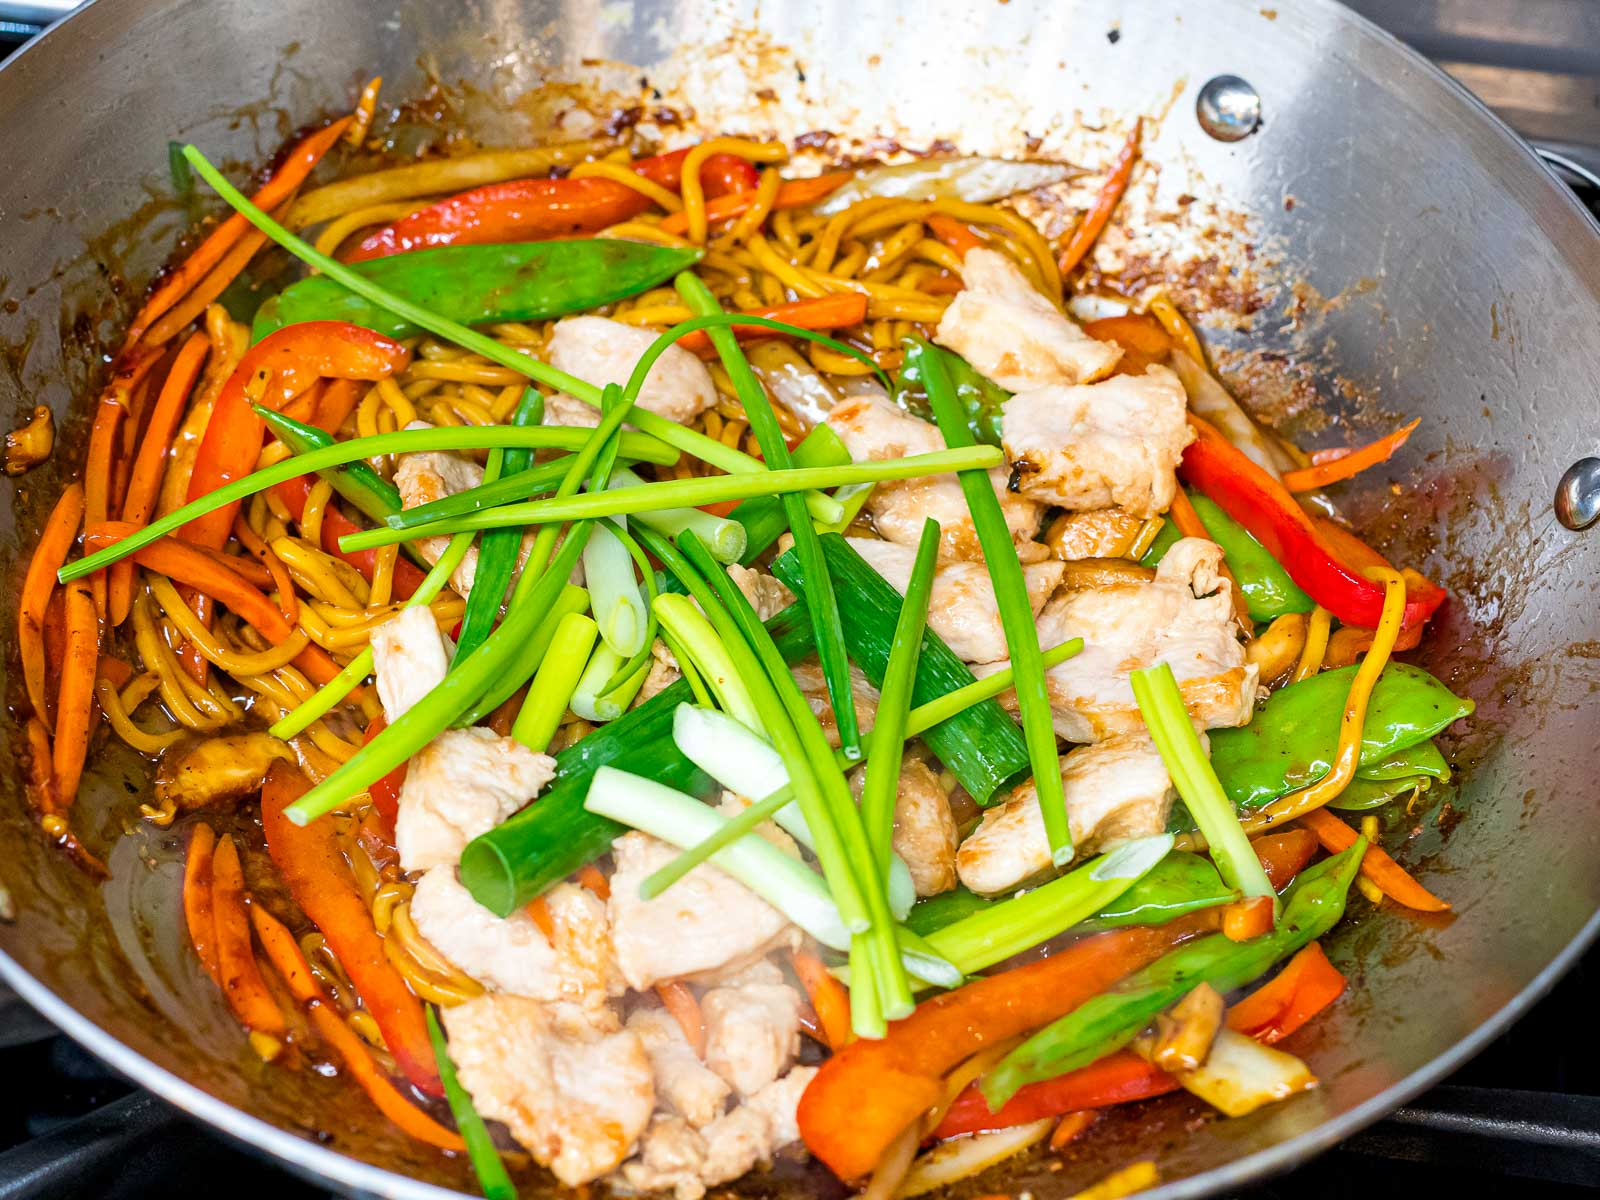 lo mein noodles, chicken, and chinese chives with vegetables in a wok